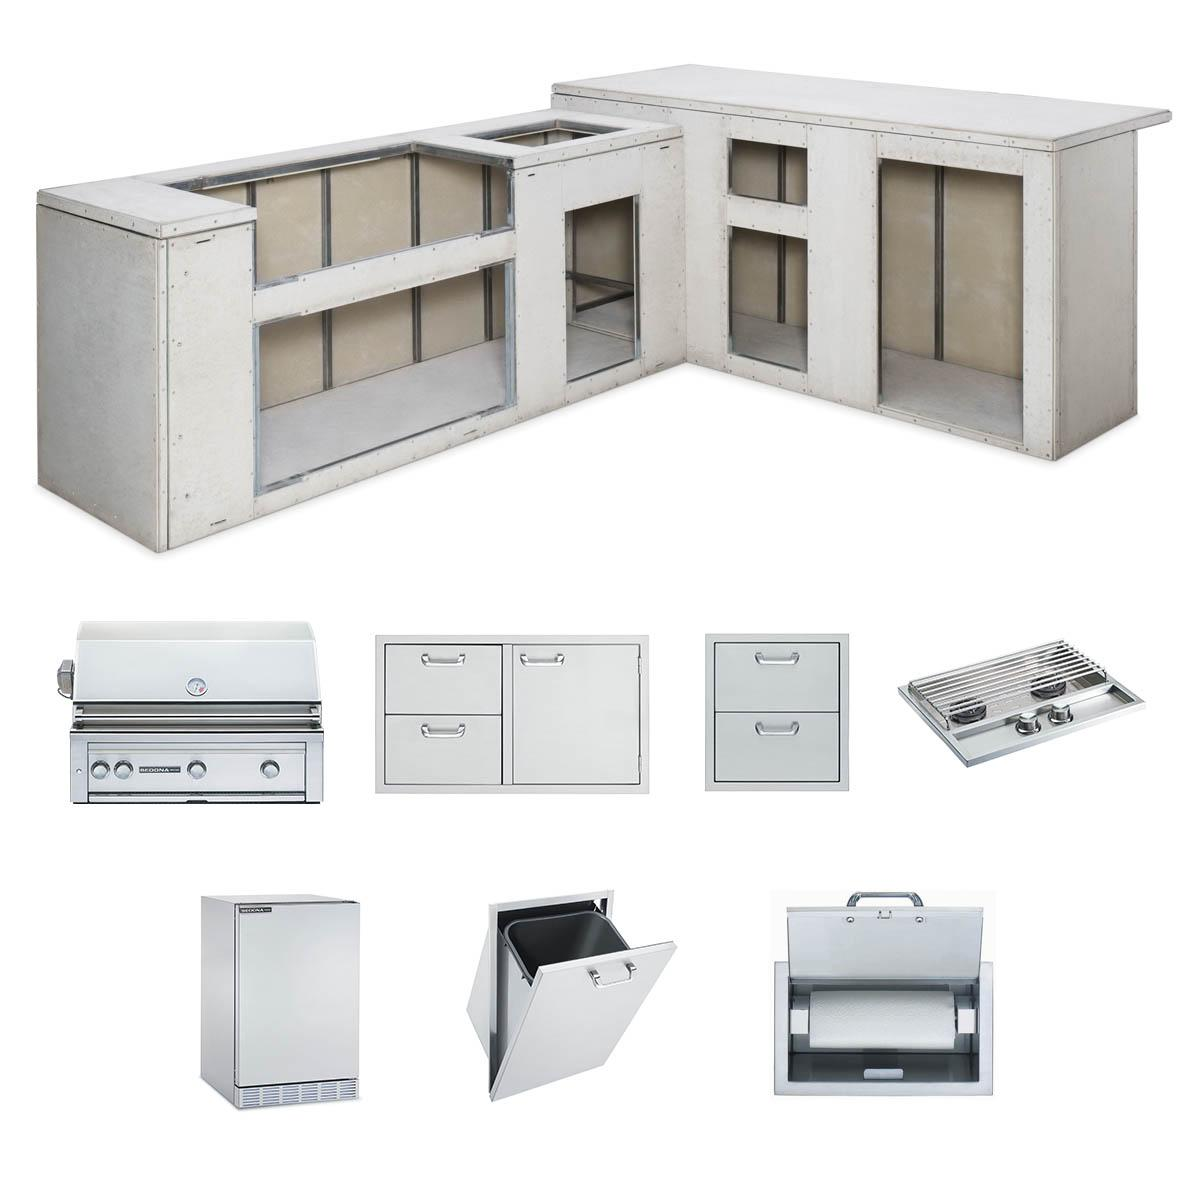 """LynxRtf Island Package Includes: L600 Grill, 36"""" Access Doors, Double Side Burner, Refrigerator, Paper Towel Dispenser, Trash Center, Double Drawers"""